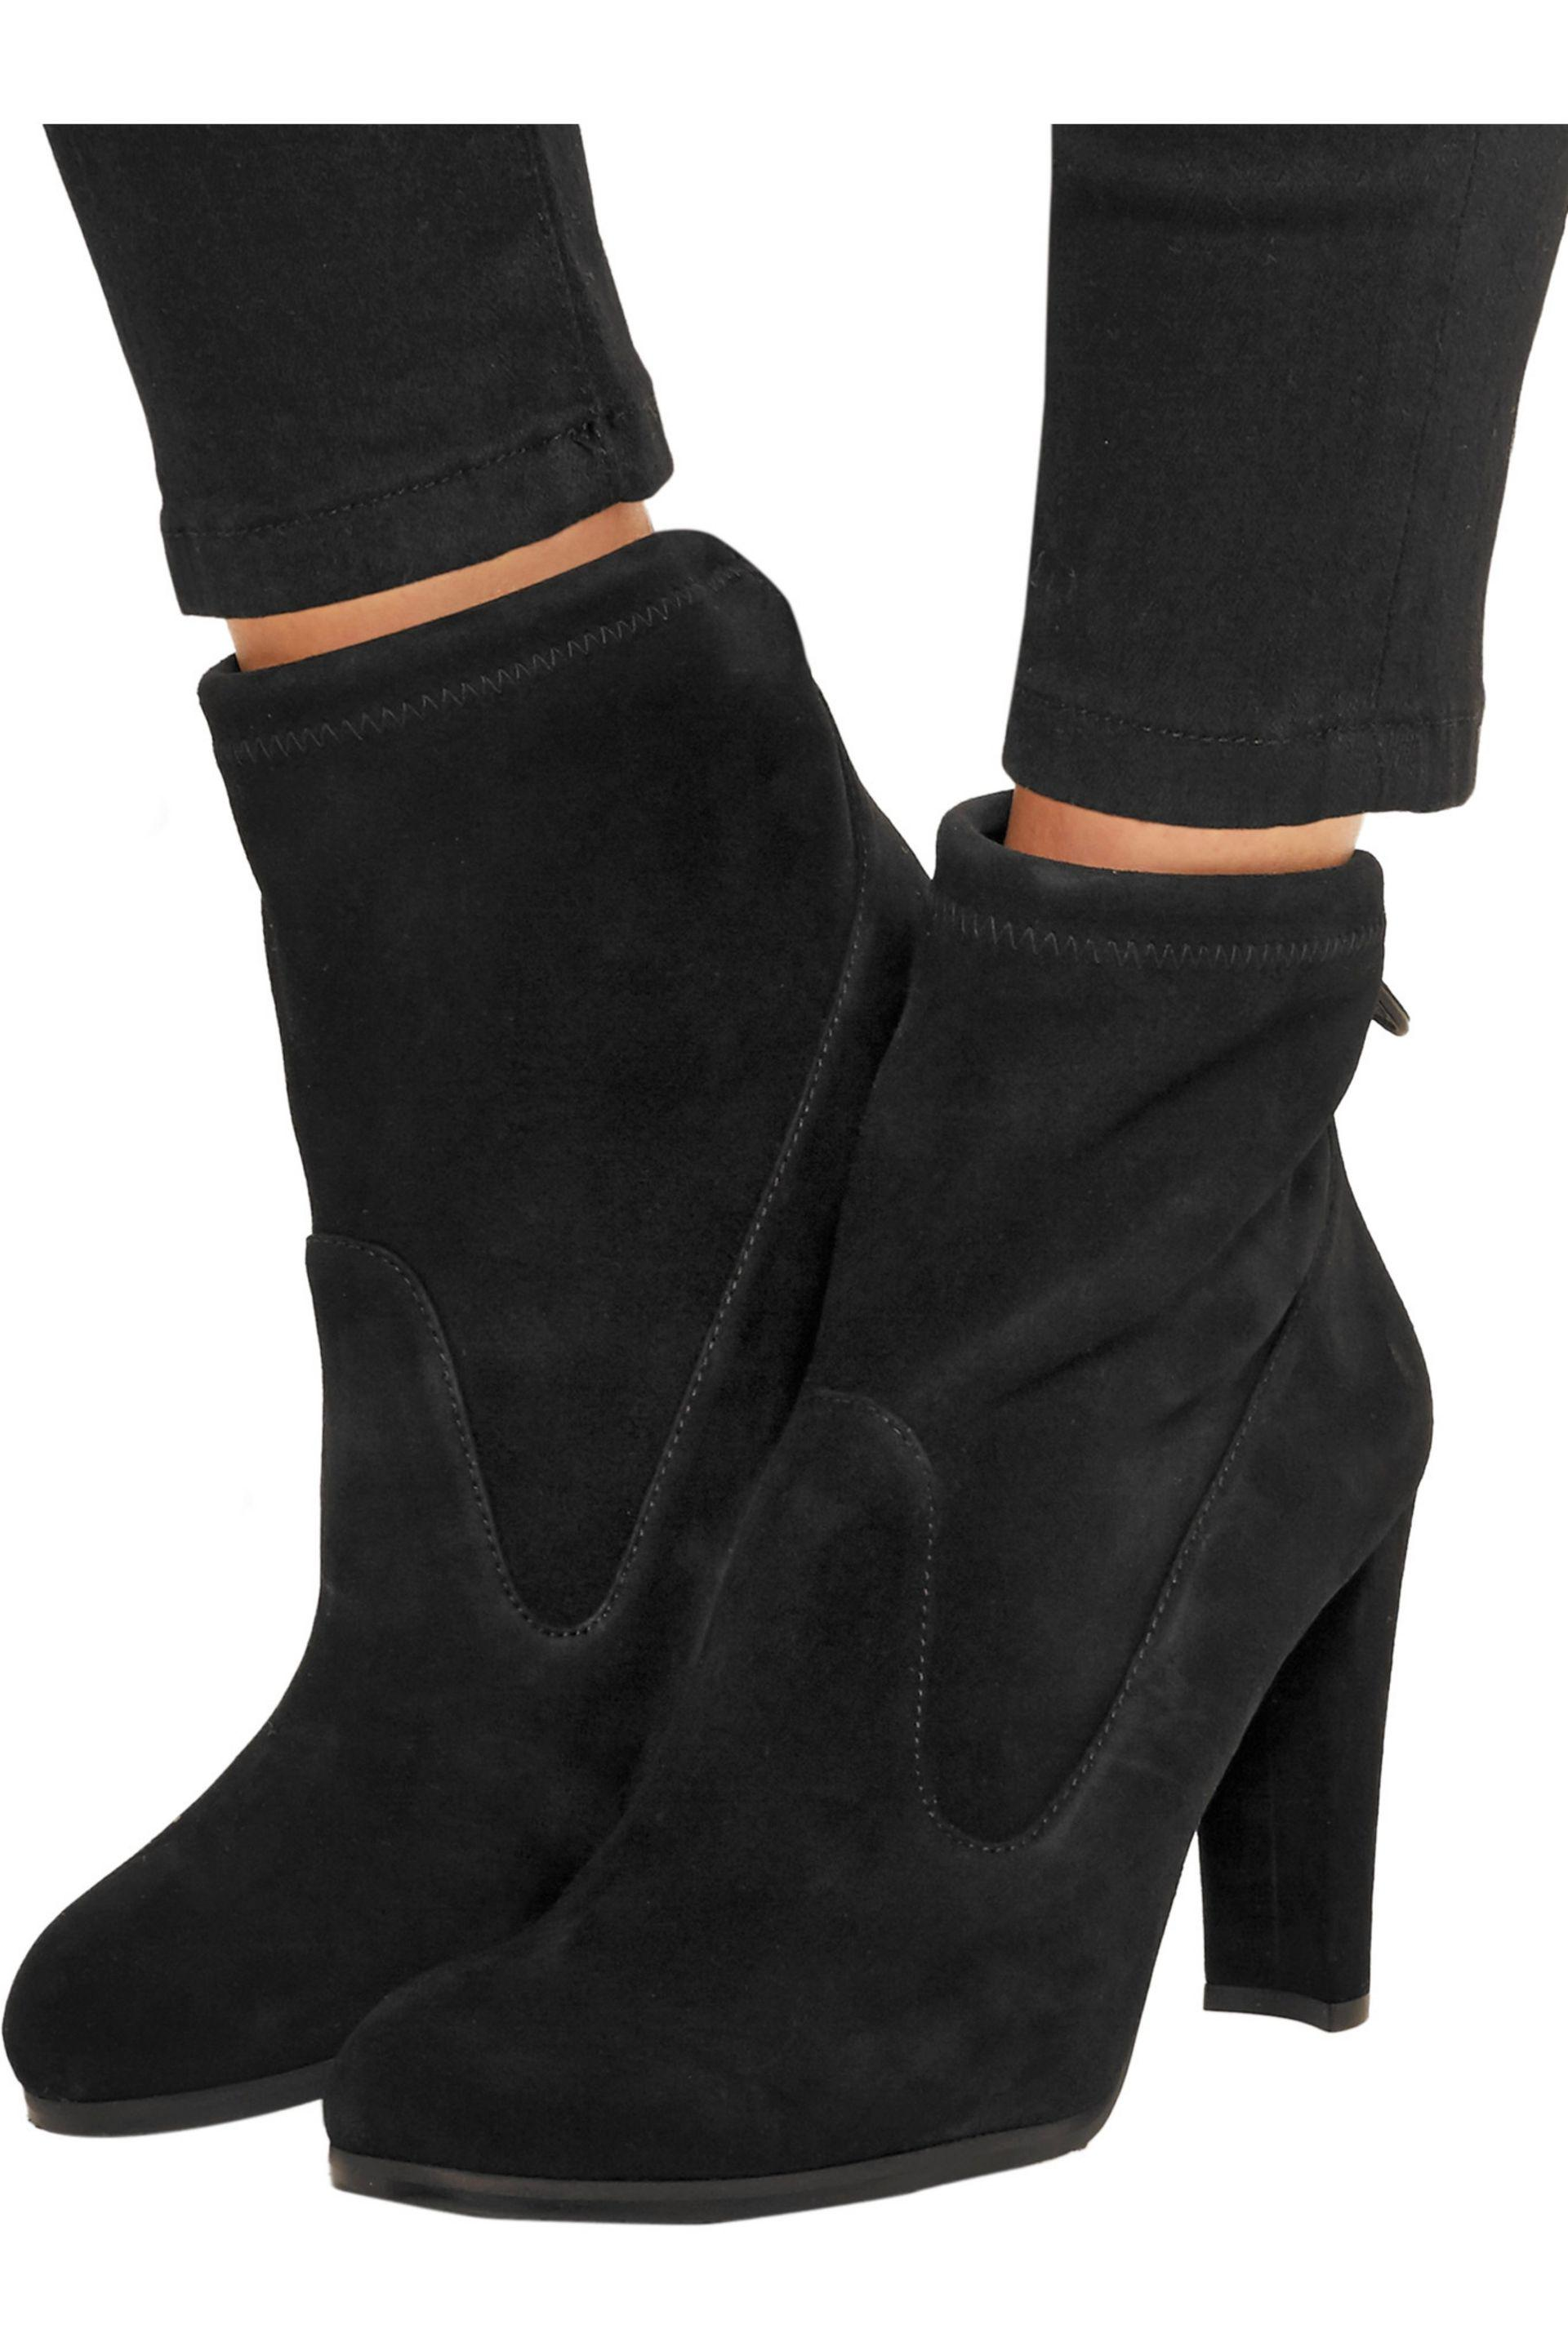 c1e85489d90d Stuart Weitzman Glove Stretch-suede Ankle Boots in Black - Lyst